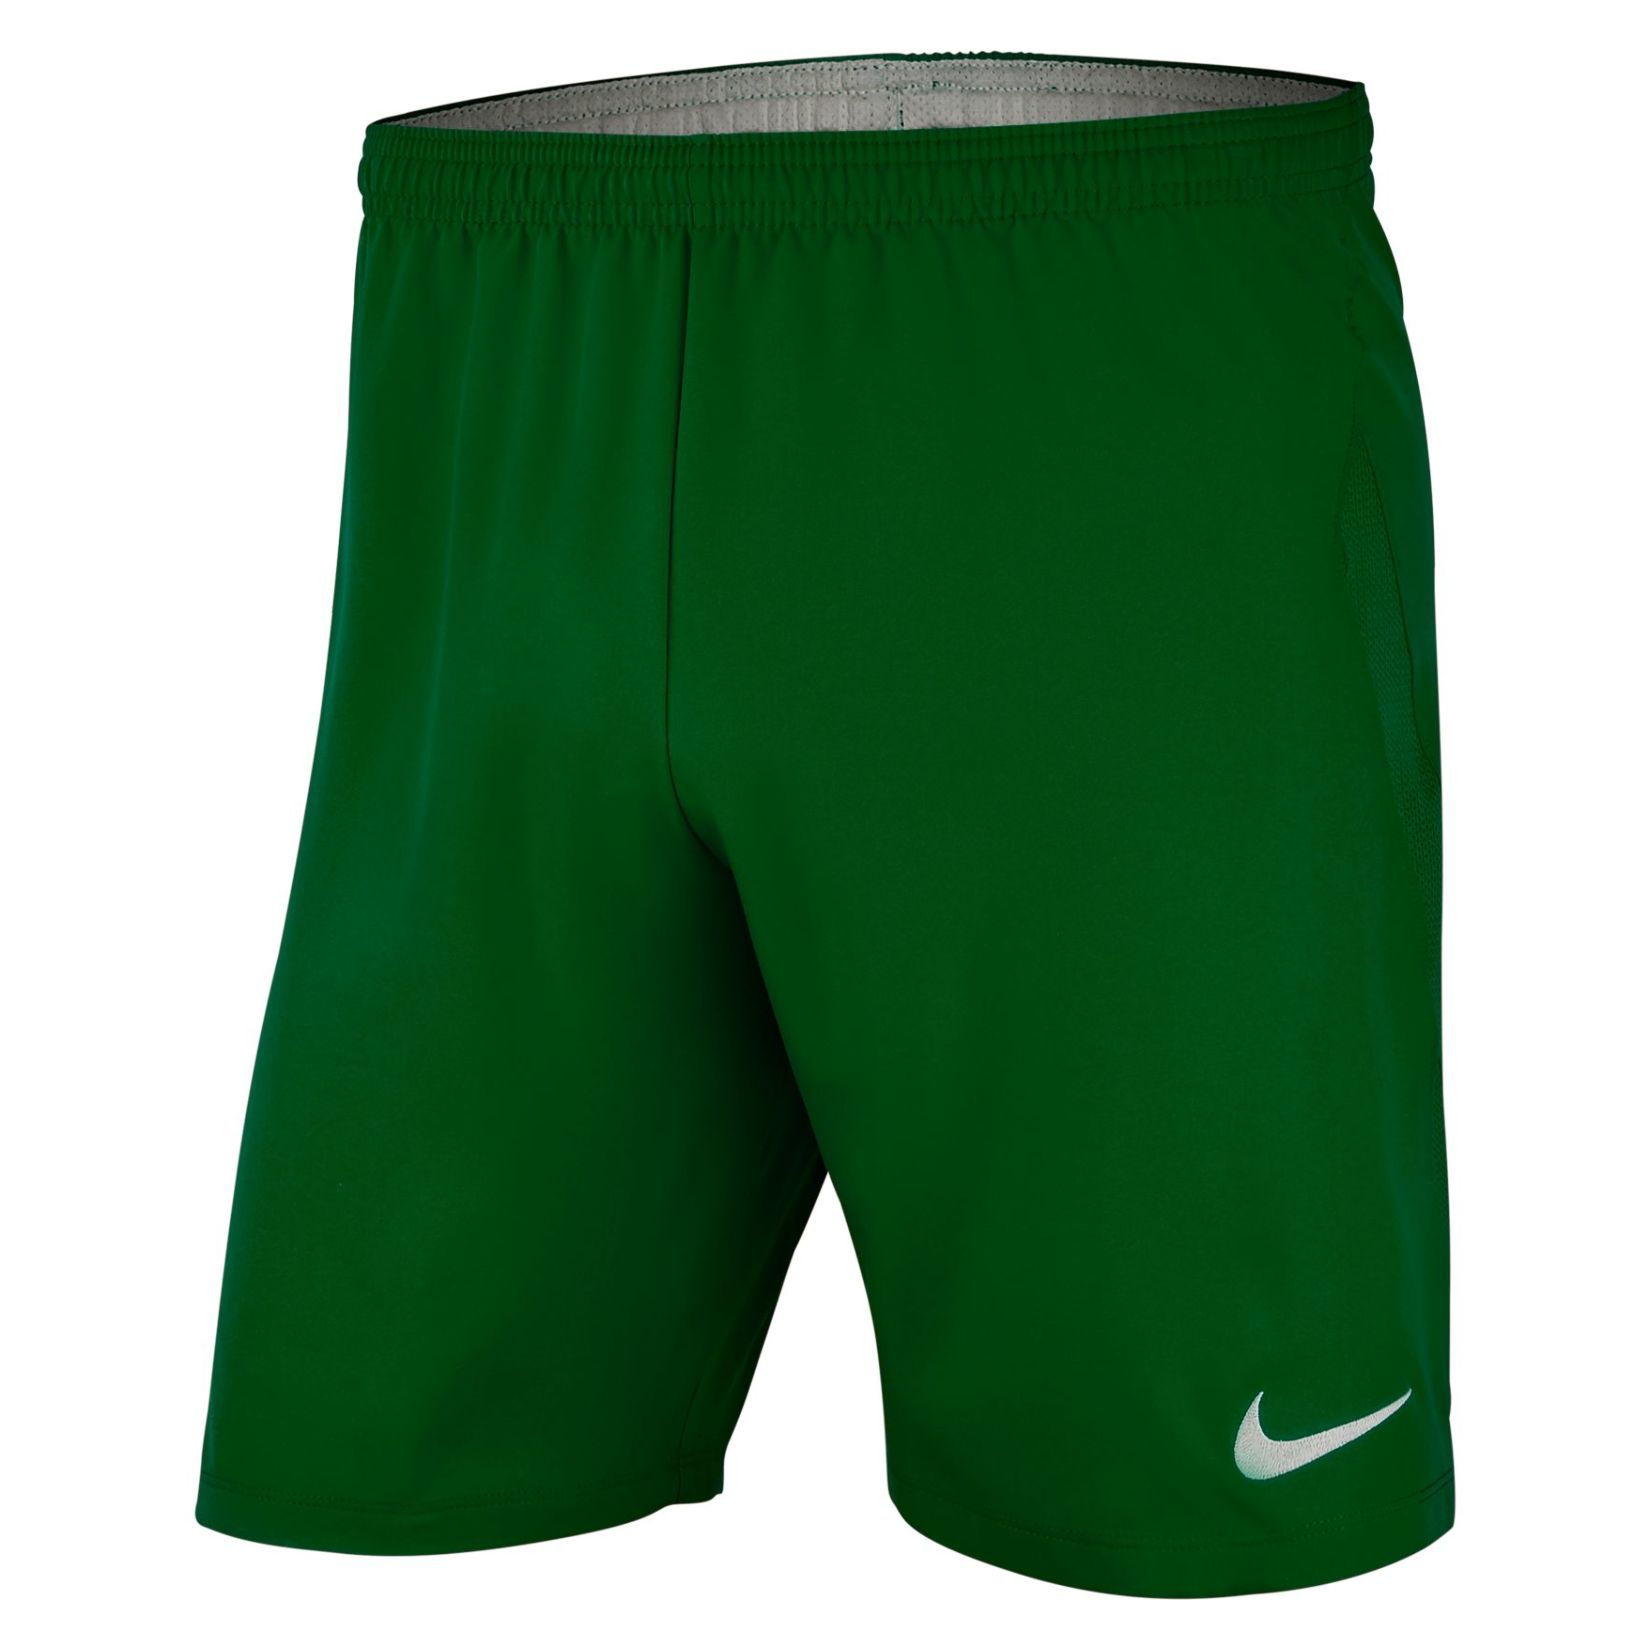 Nike Dri-fit Laser Iv Woven Short Without Brief Pine Green-Pine Green-White